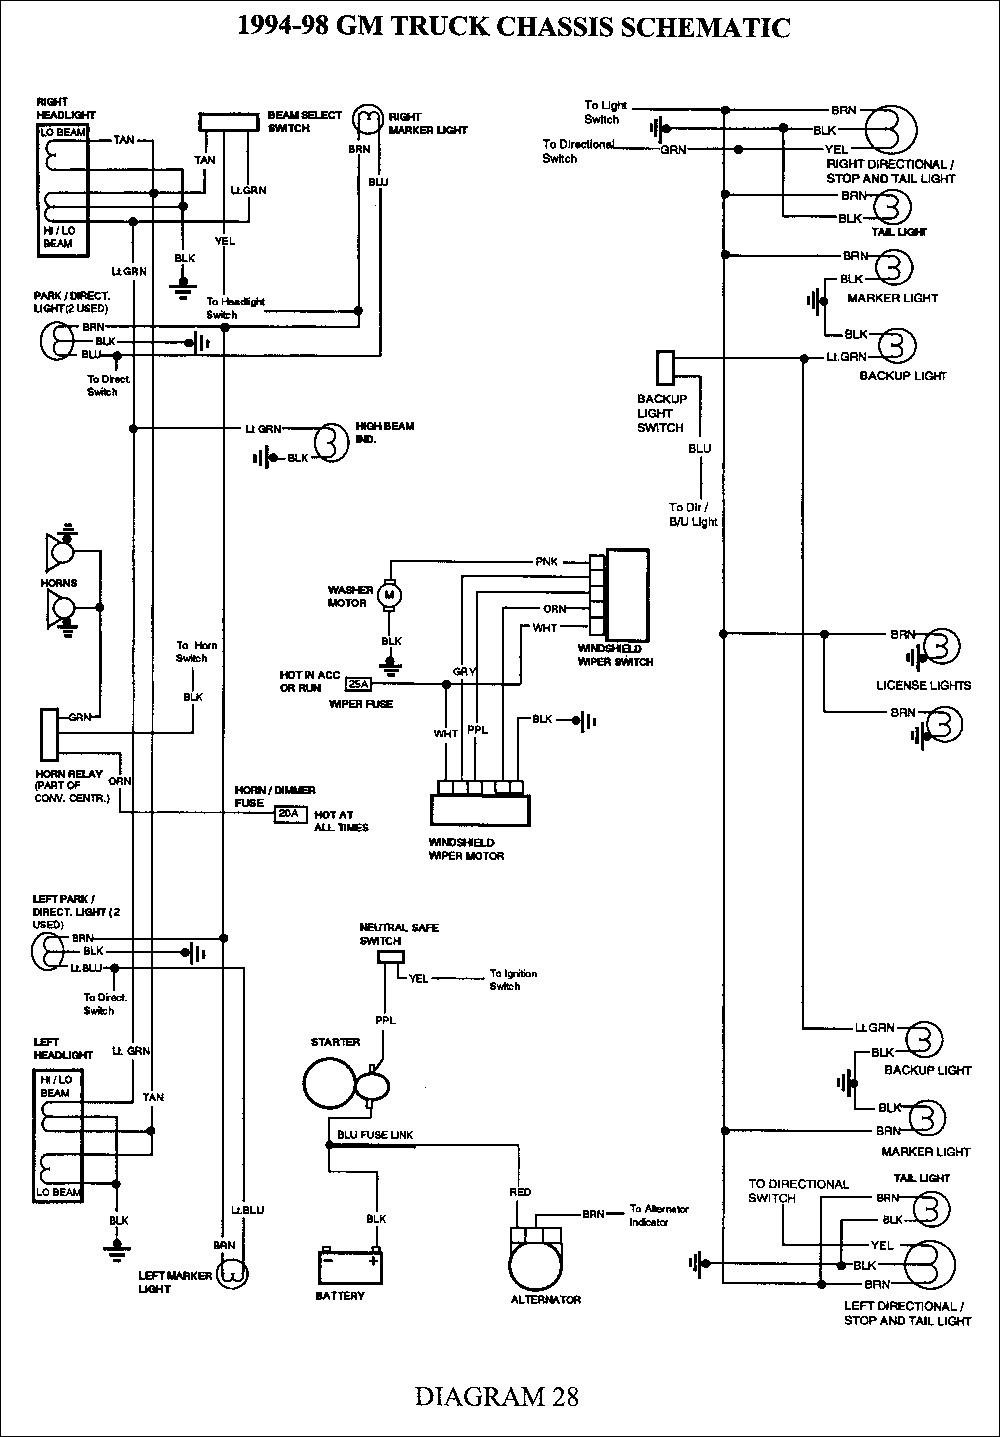 2000 gmc jimmy wiring diagram schematic diagram rh 102 3dpd co